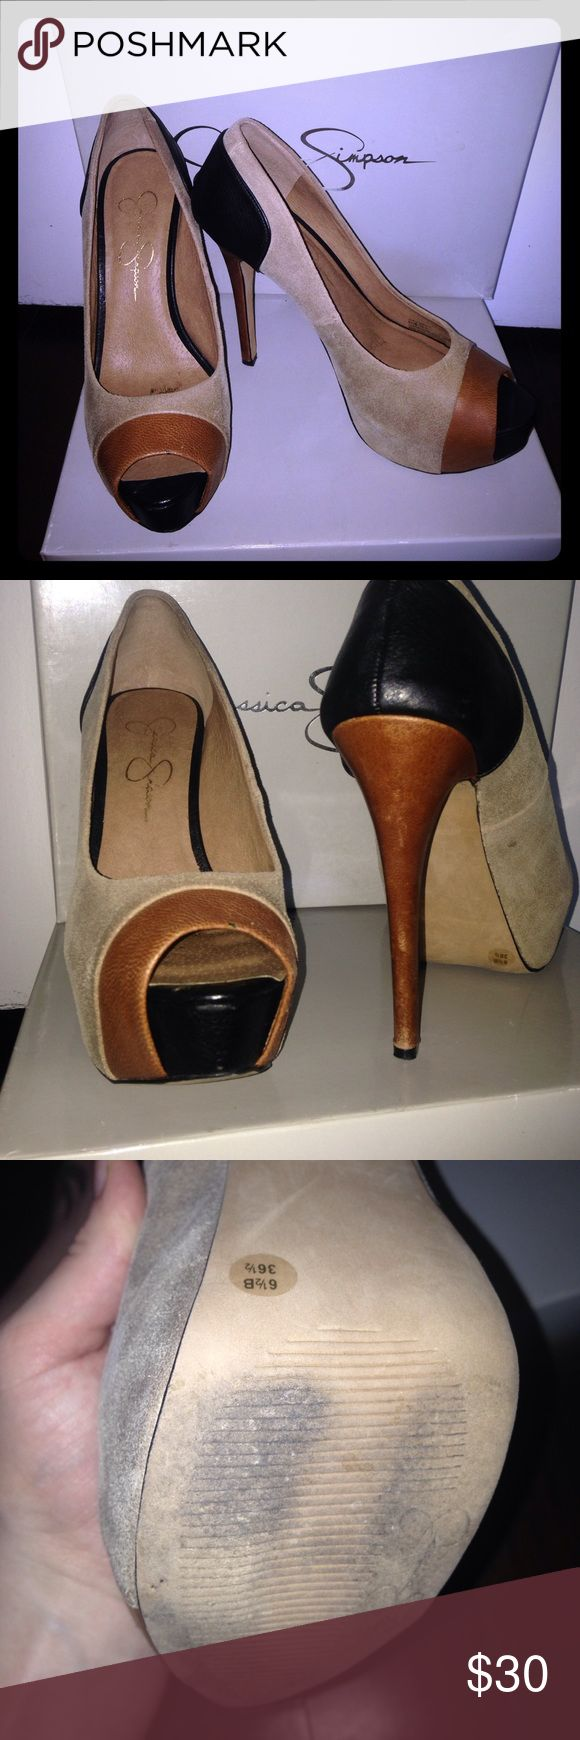 Jessica Simpson Pleasance Tan & Black pumps 6.5 Worn these beautiful pumps once to dinner & haven't worn them since! They're a size 6.5. They have been stored in the original box the whole time. They are made of suede and leather. Jessica Simpson Shoes Heels